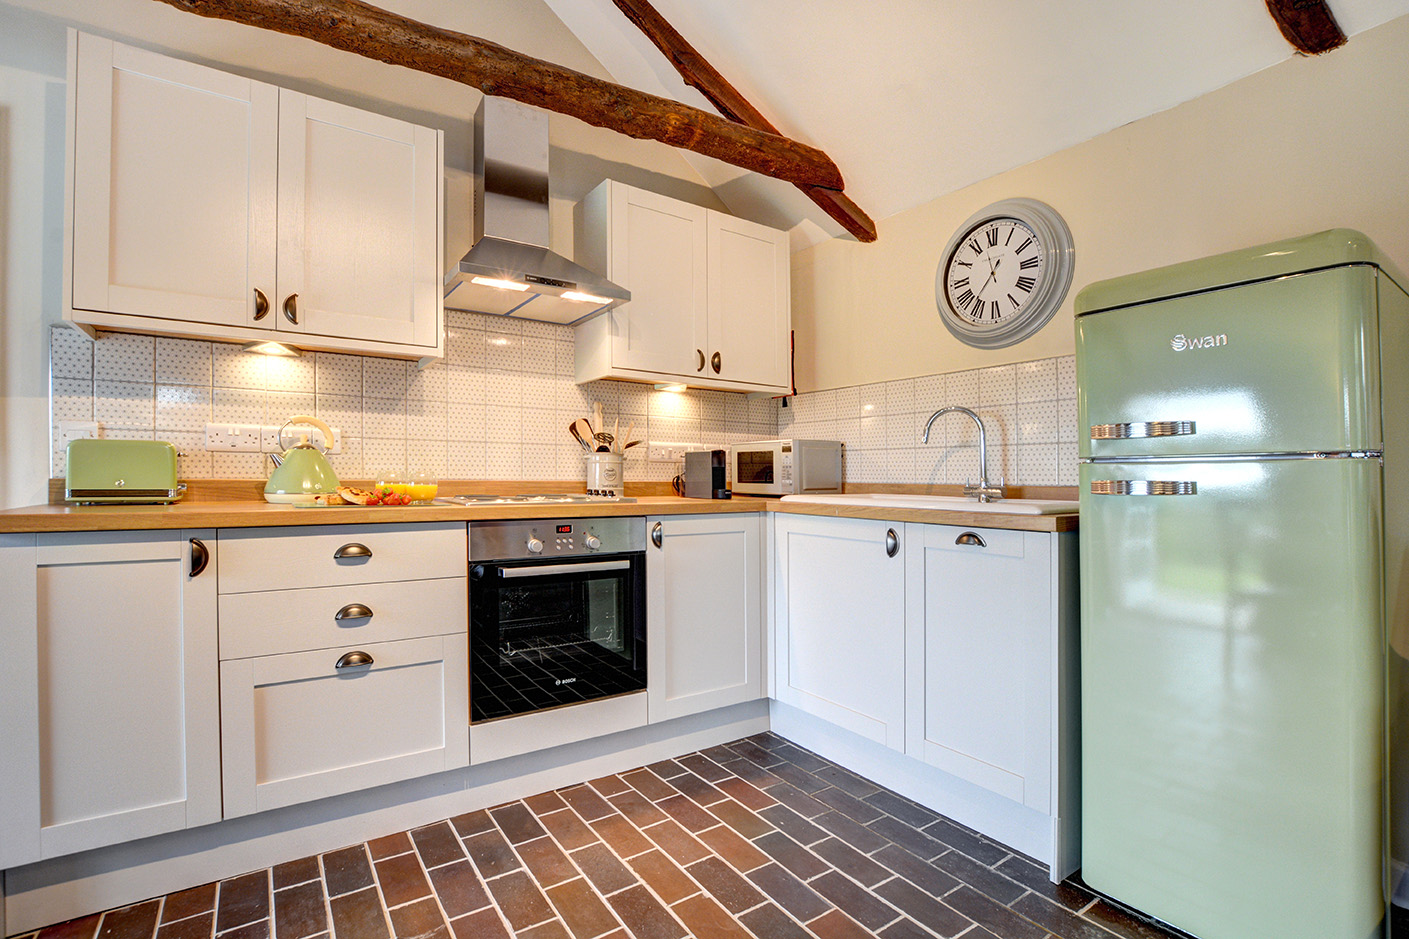 The kitchen area of The Linney self catering cottage converted barn at Penrose Burden holiday cottages in Cornwall.jpg